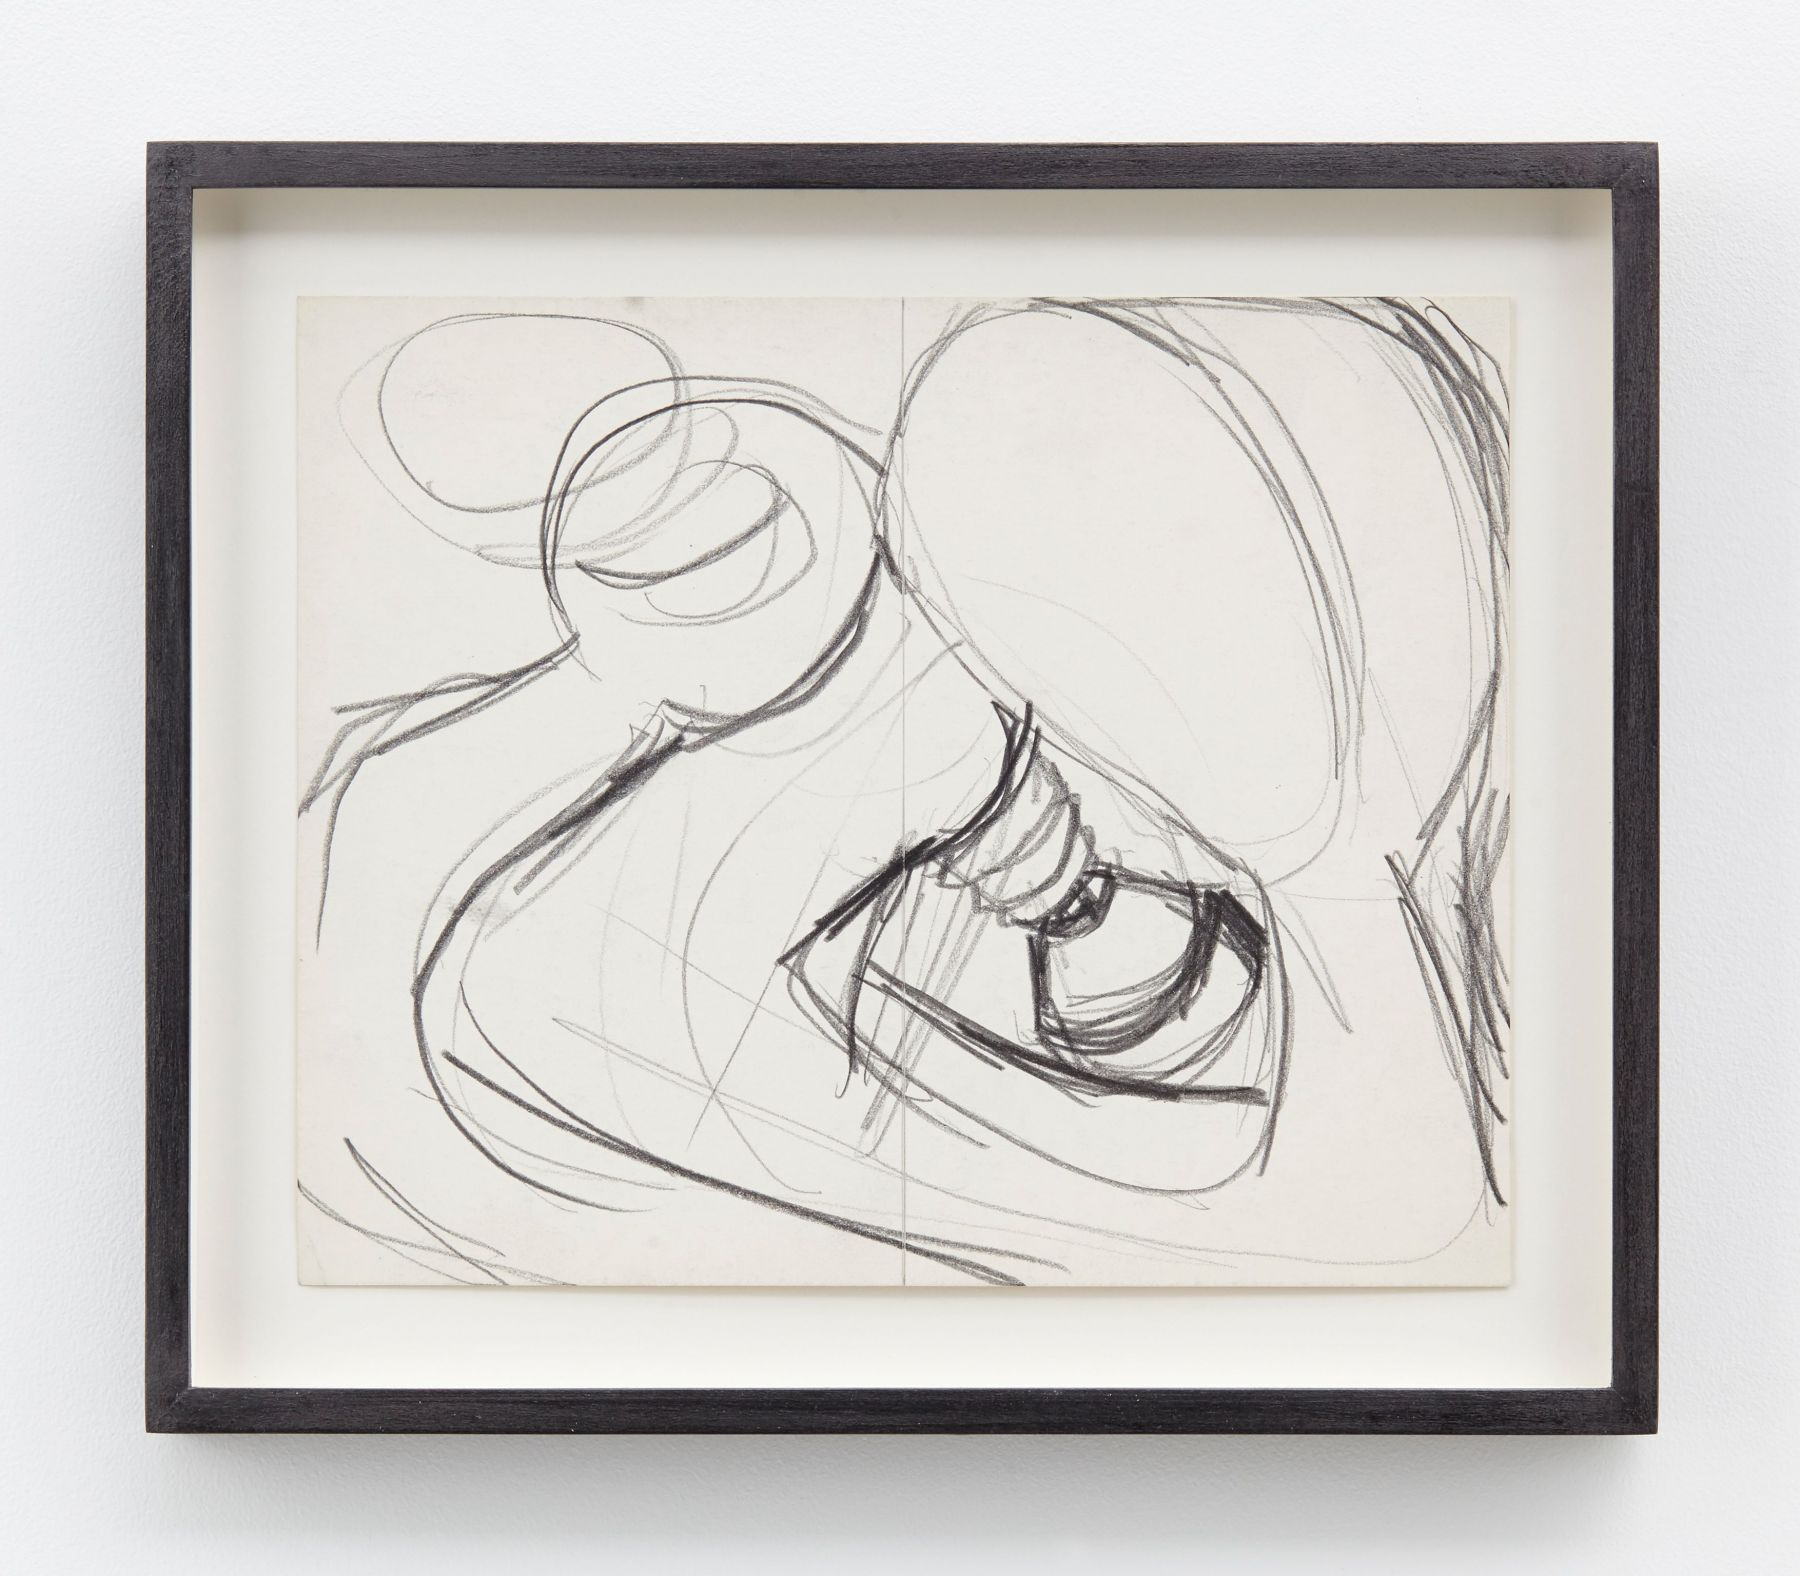 Lee Lozano, No Title, 1963-64, Graphite on paper, Paper: 8 1/2 x 10 1/4 inches (21.6 x 26 cm) Framed: 11 x 12 7/8 x 1 1/4 inches (27.9 x 32.7 x 3.2 cm)